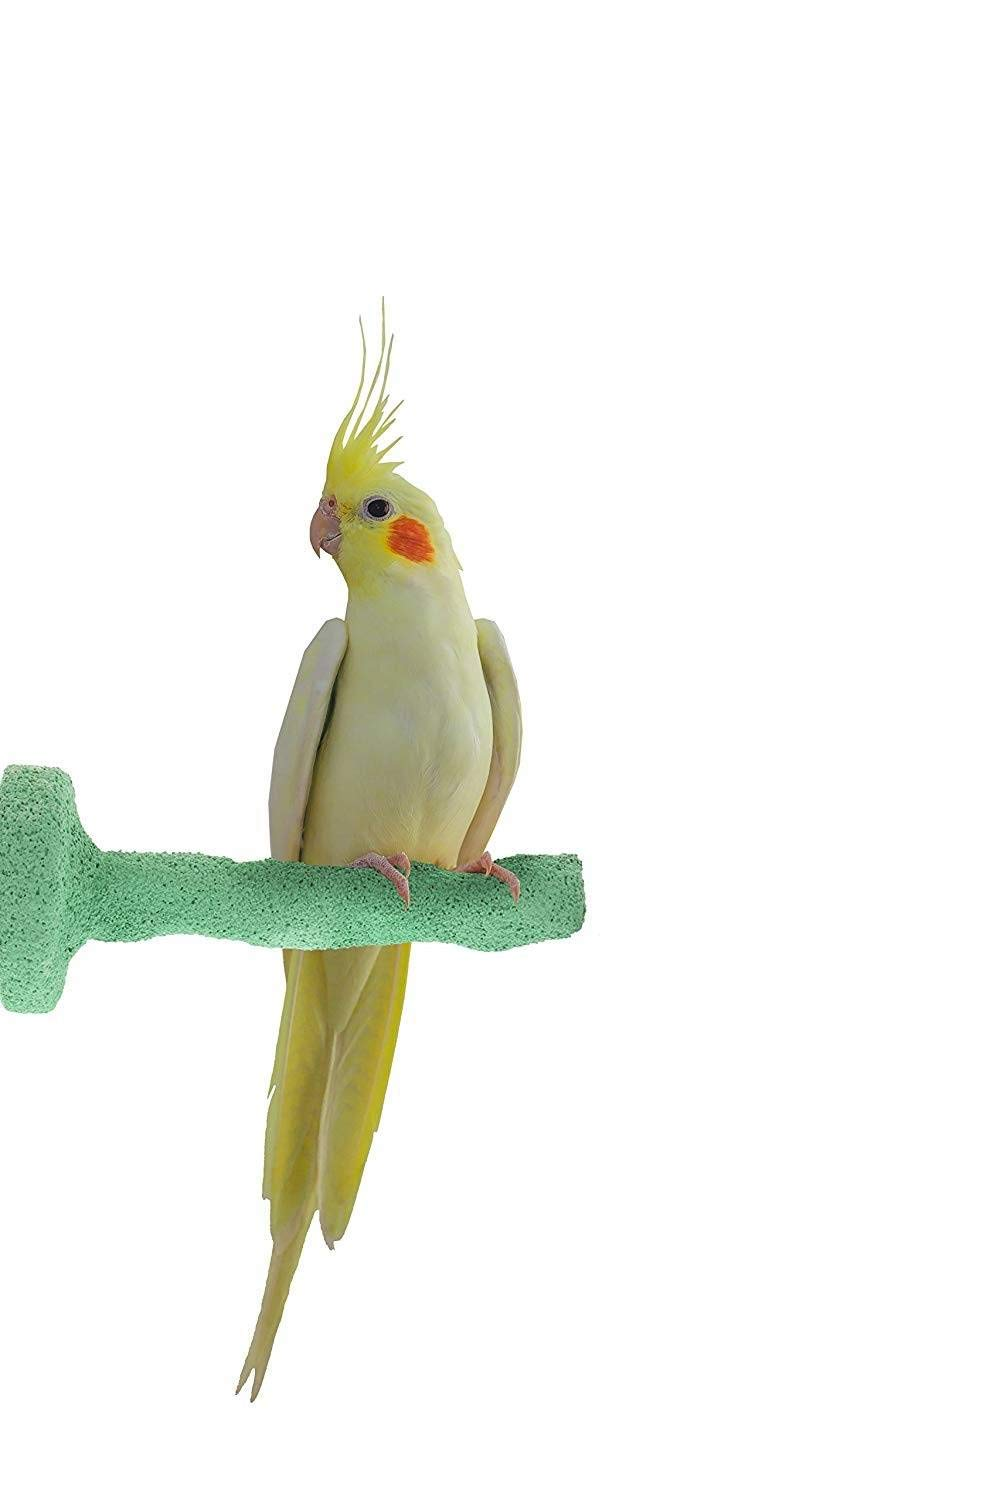 Green Small Green Small Sweet Feet and Beak Thermal-Lite Natural Patented Perch, Small Green- Perfect for Keeping Your Bird's Feet and Beaks Healthy